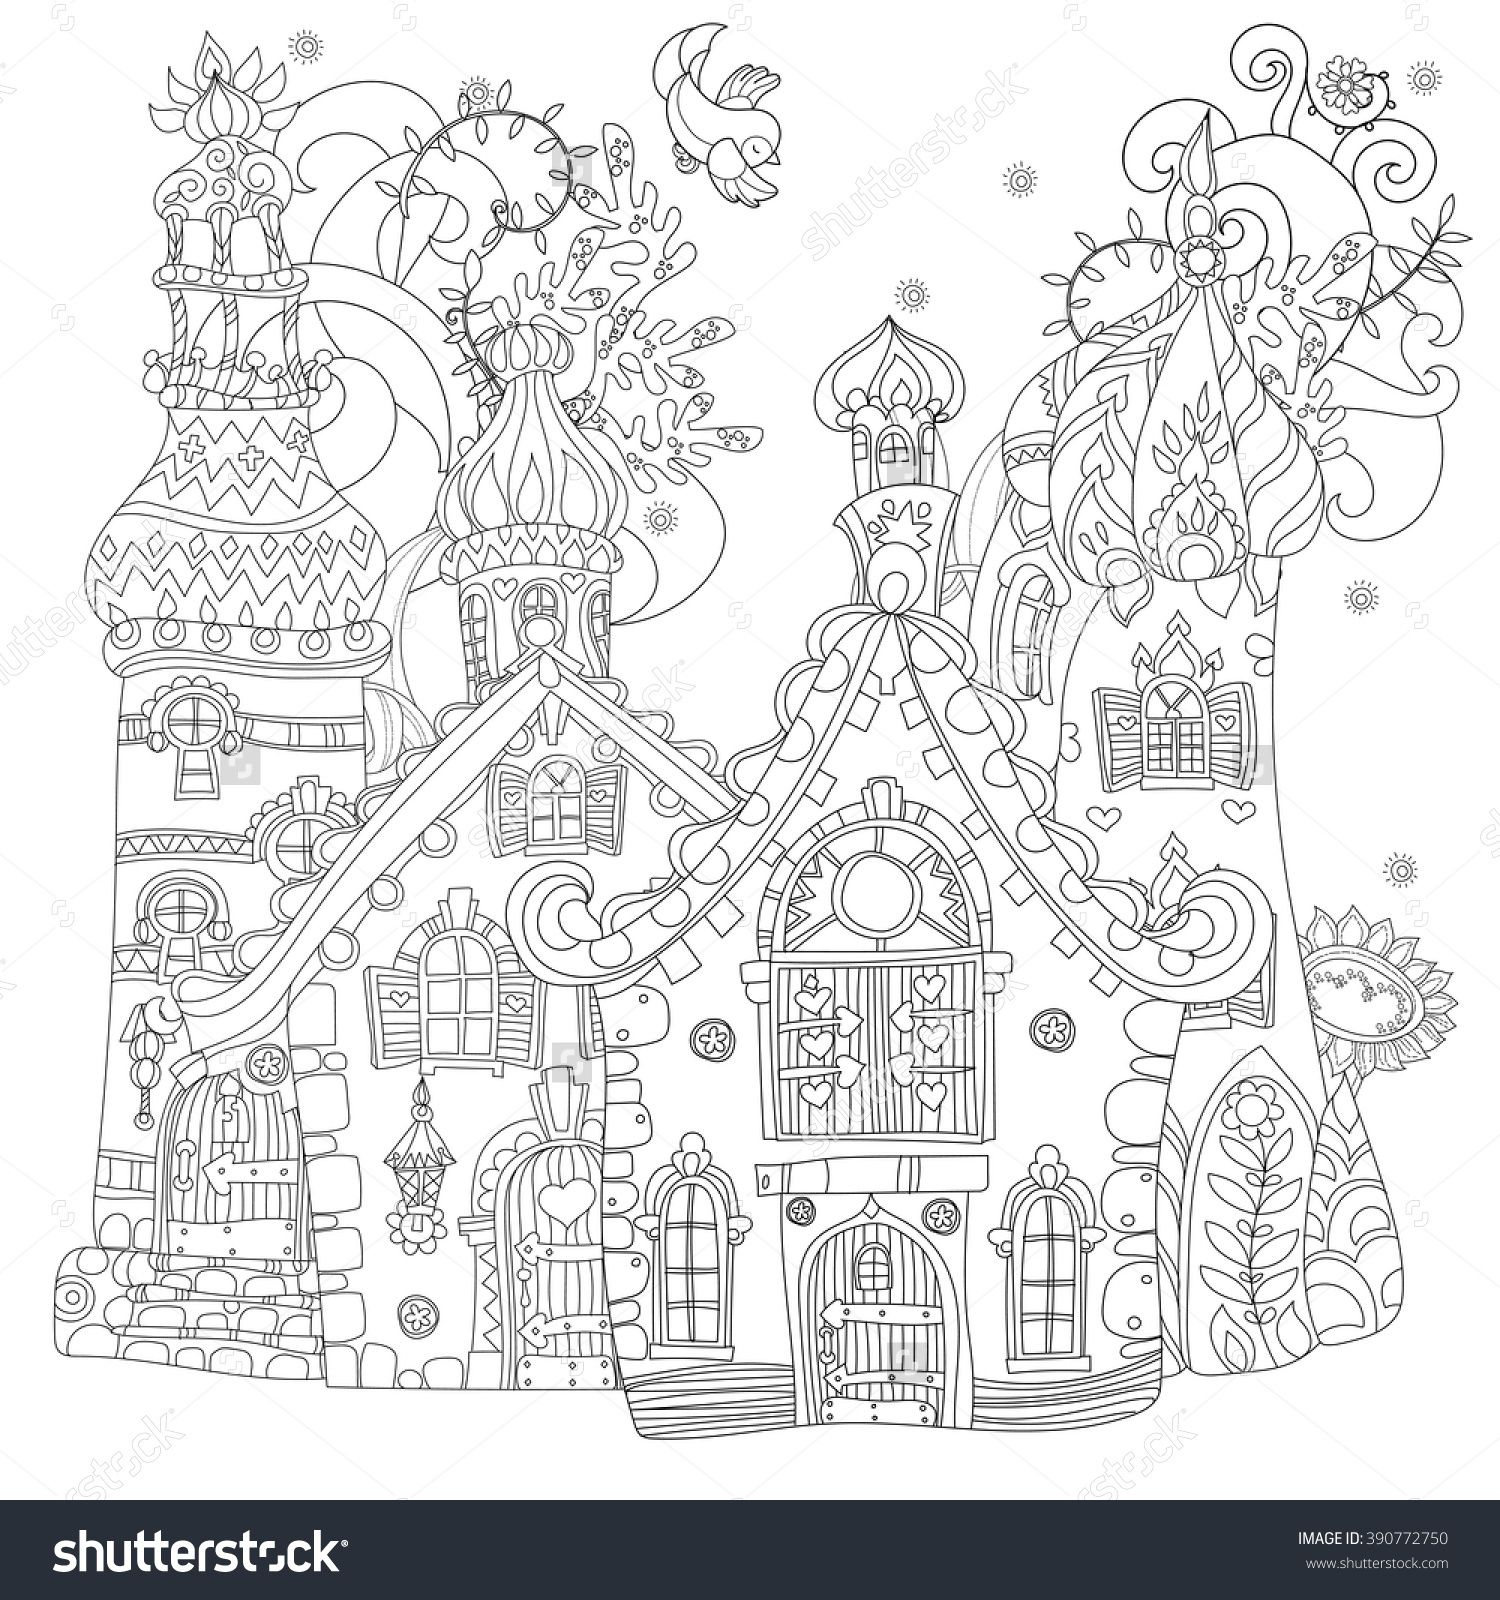 Vector Cute Fairy Tale Town DoodleVector Line IllustrationSketch For Postcard Or Print Coloring Adult BookBoho Zentangle Style